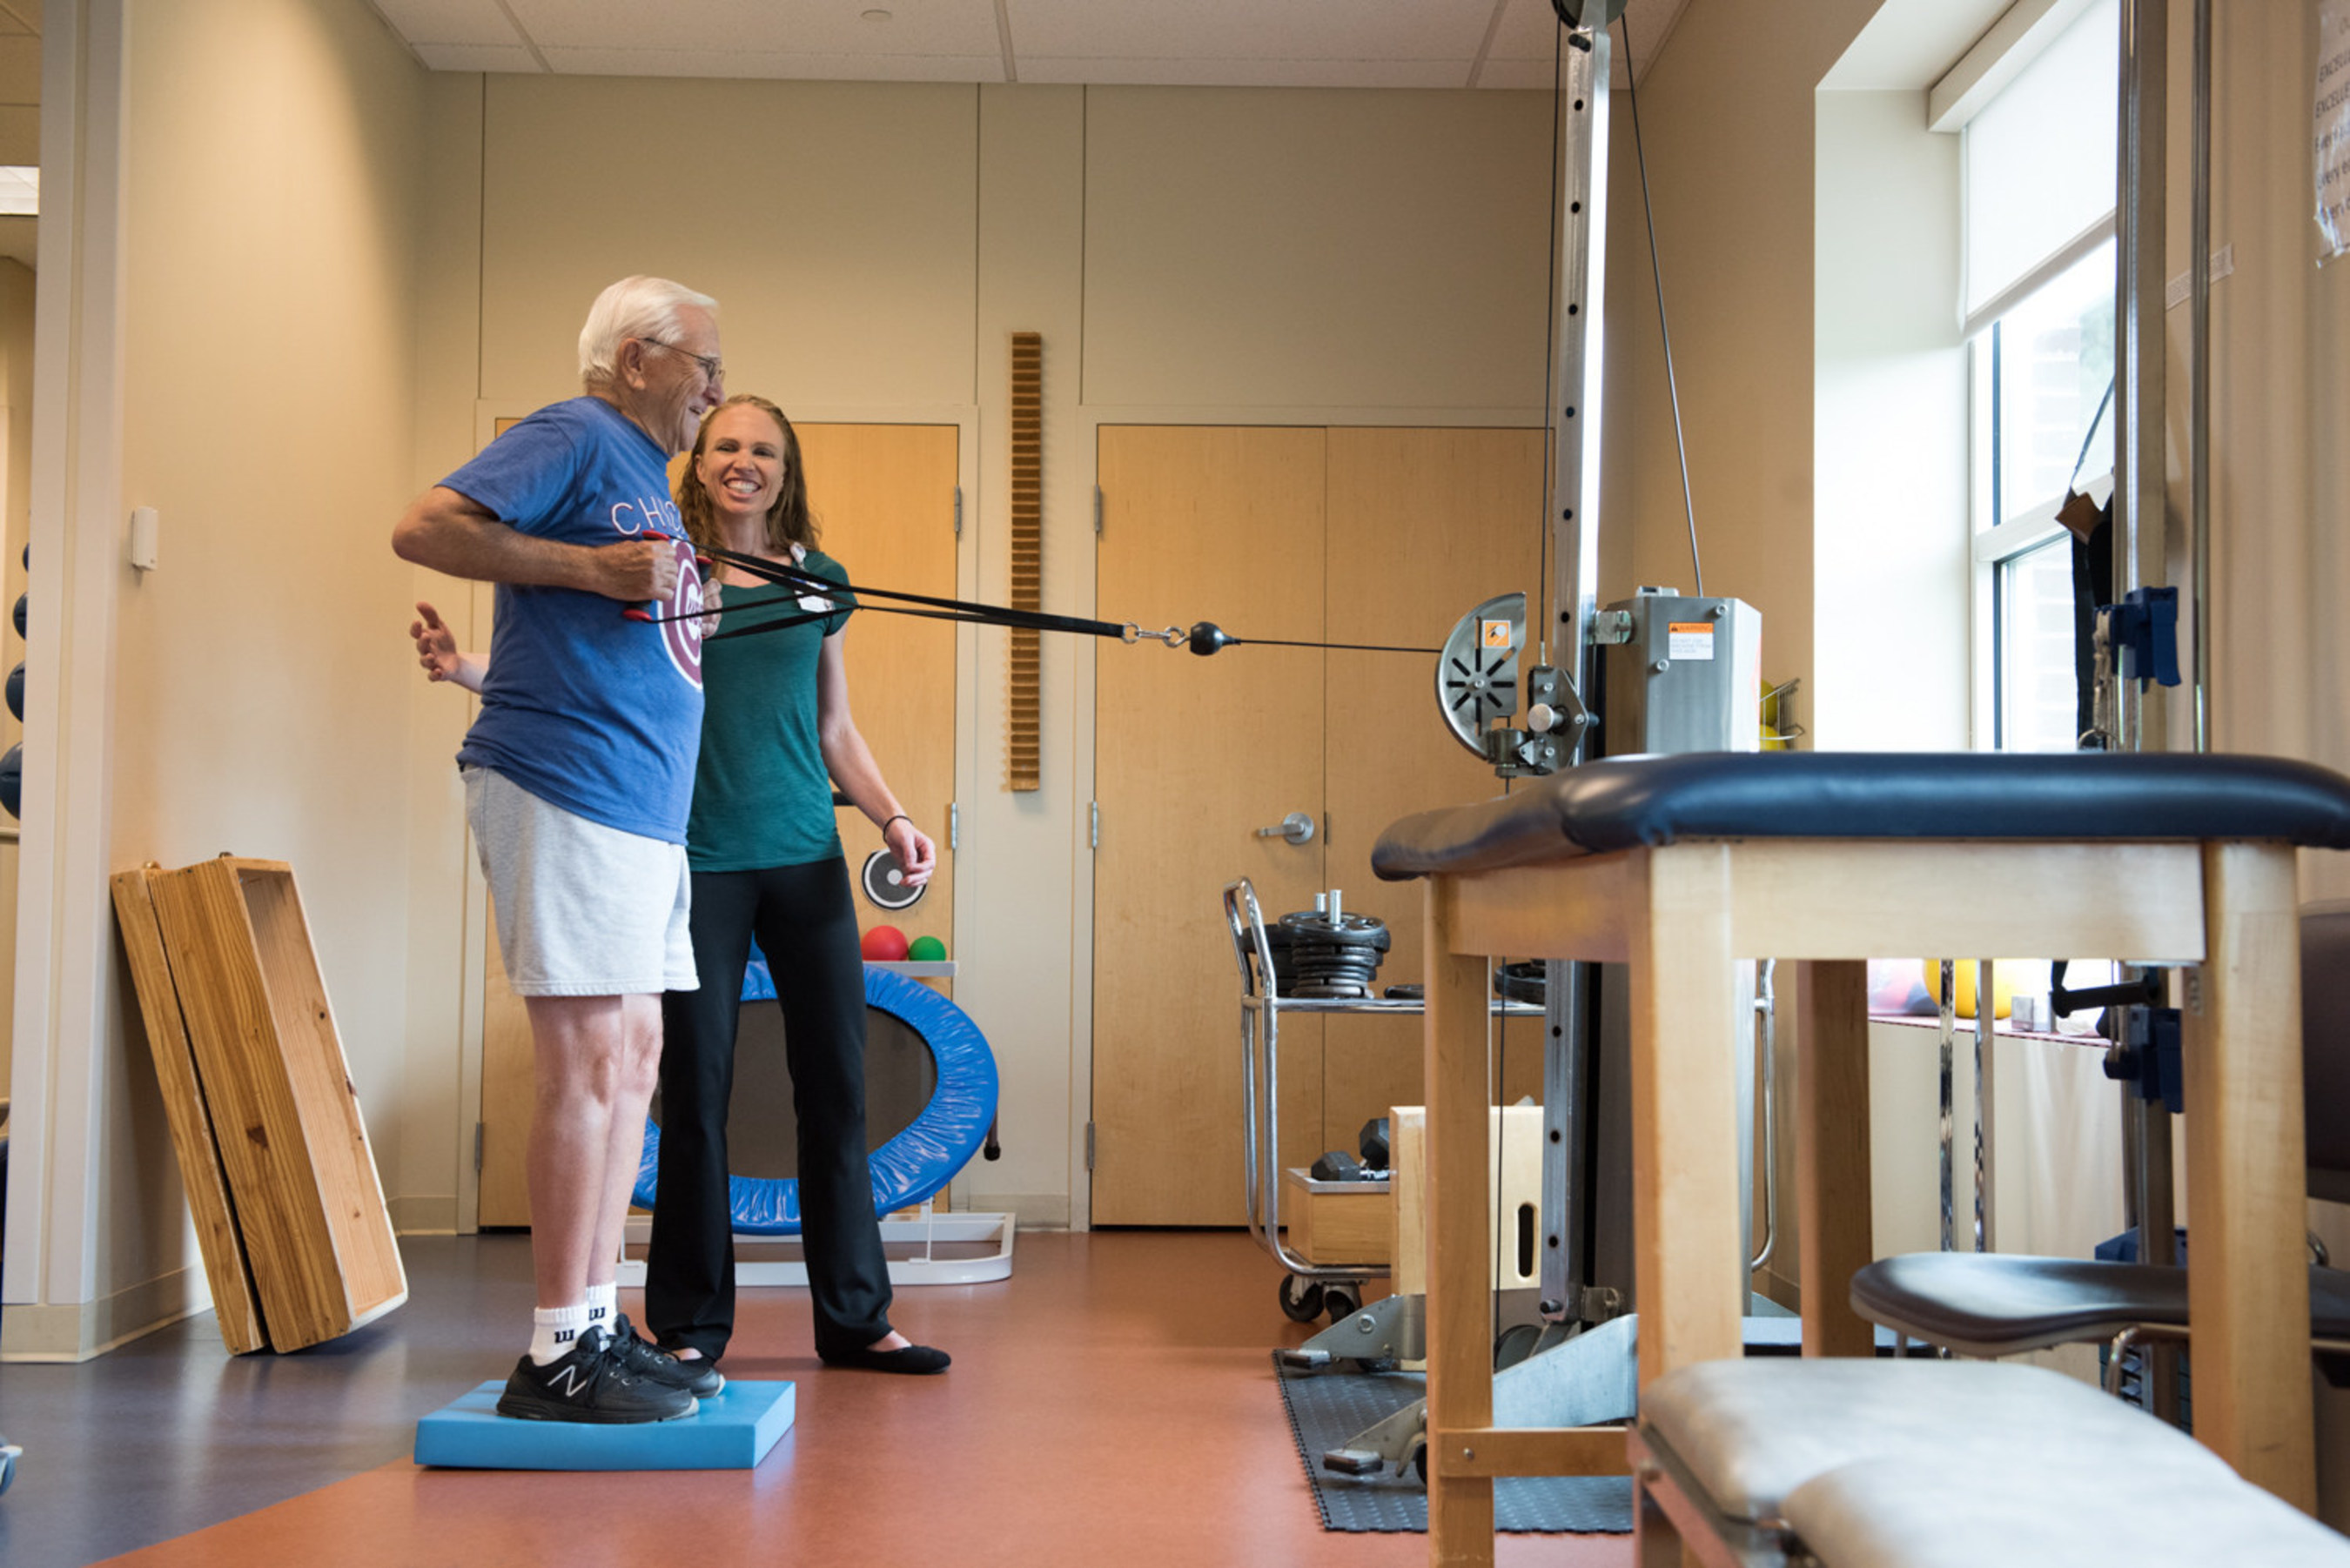 Northwestern Medicine Delnor Health & Fitness Center has been renewed as a Certified Medical Fitness Facility by the Medical Fitness Association.